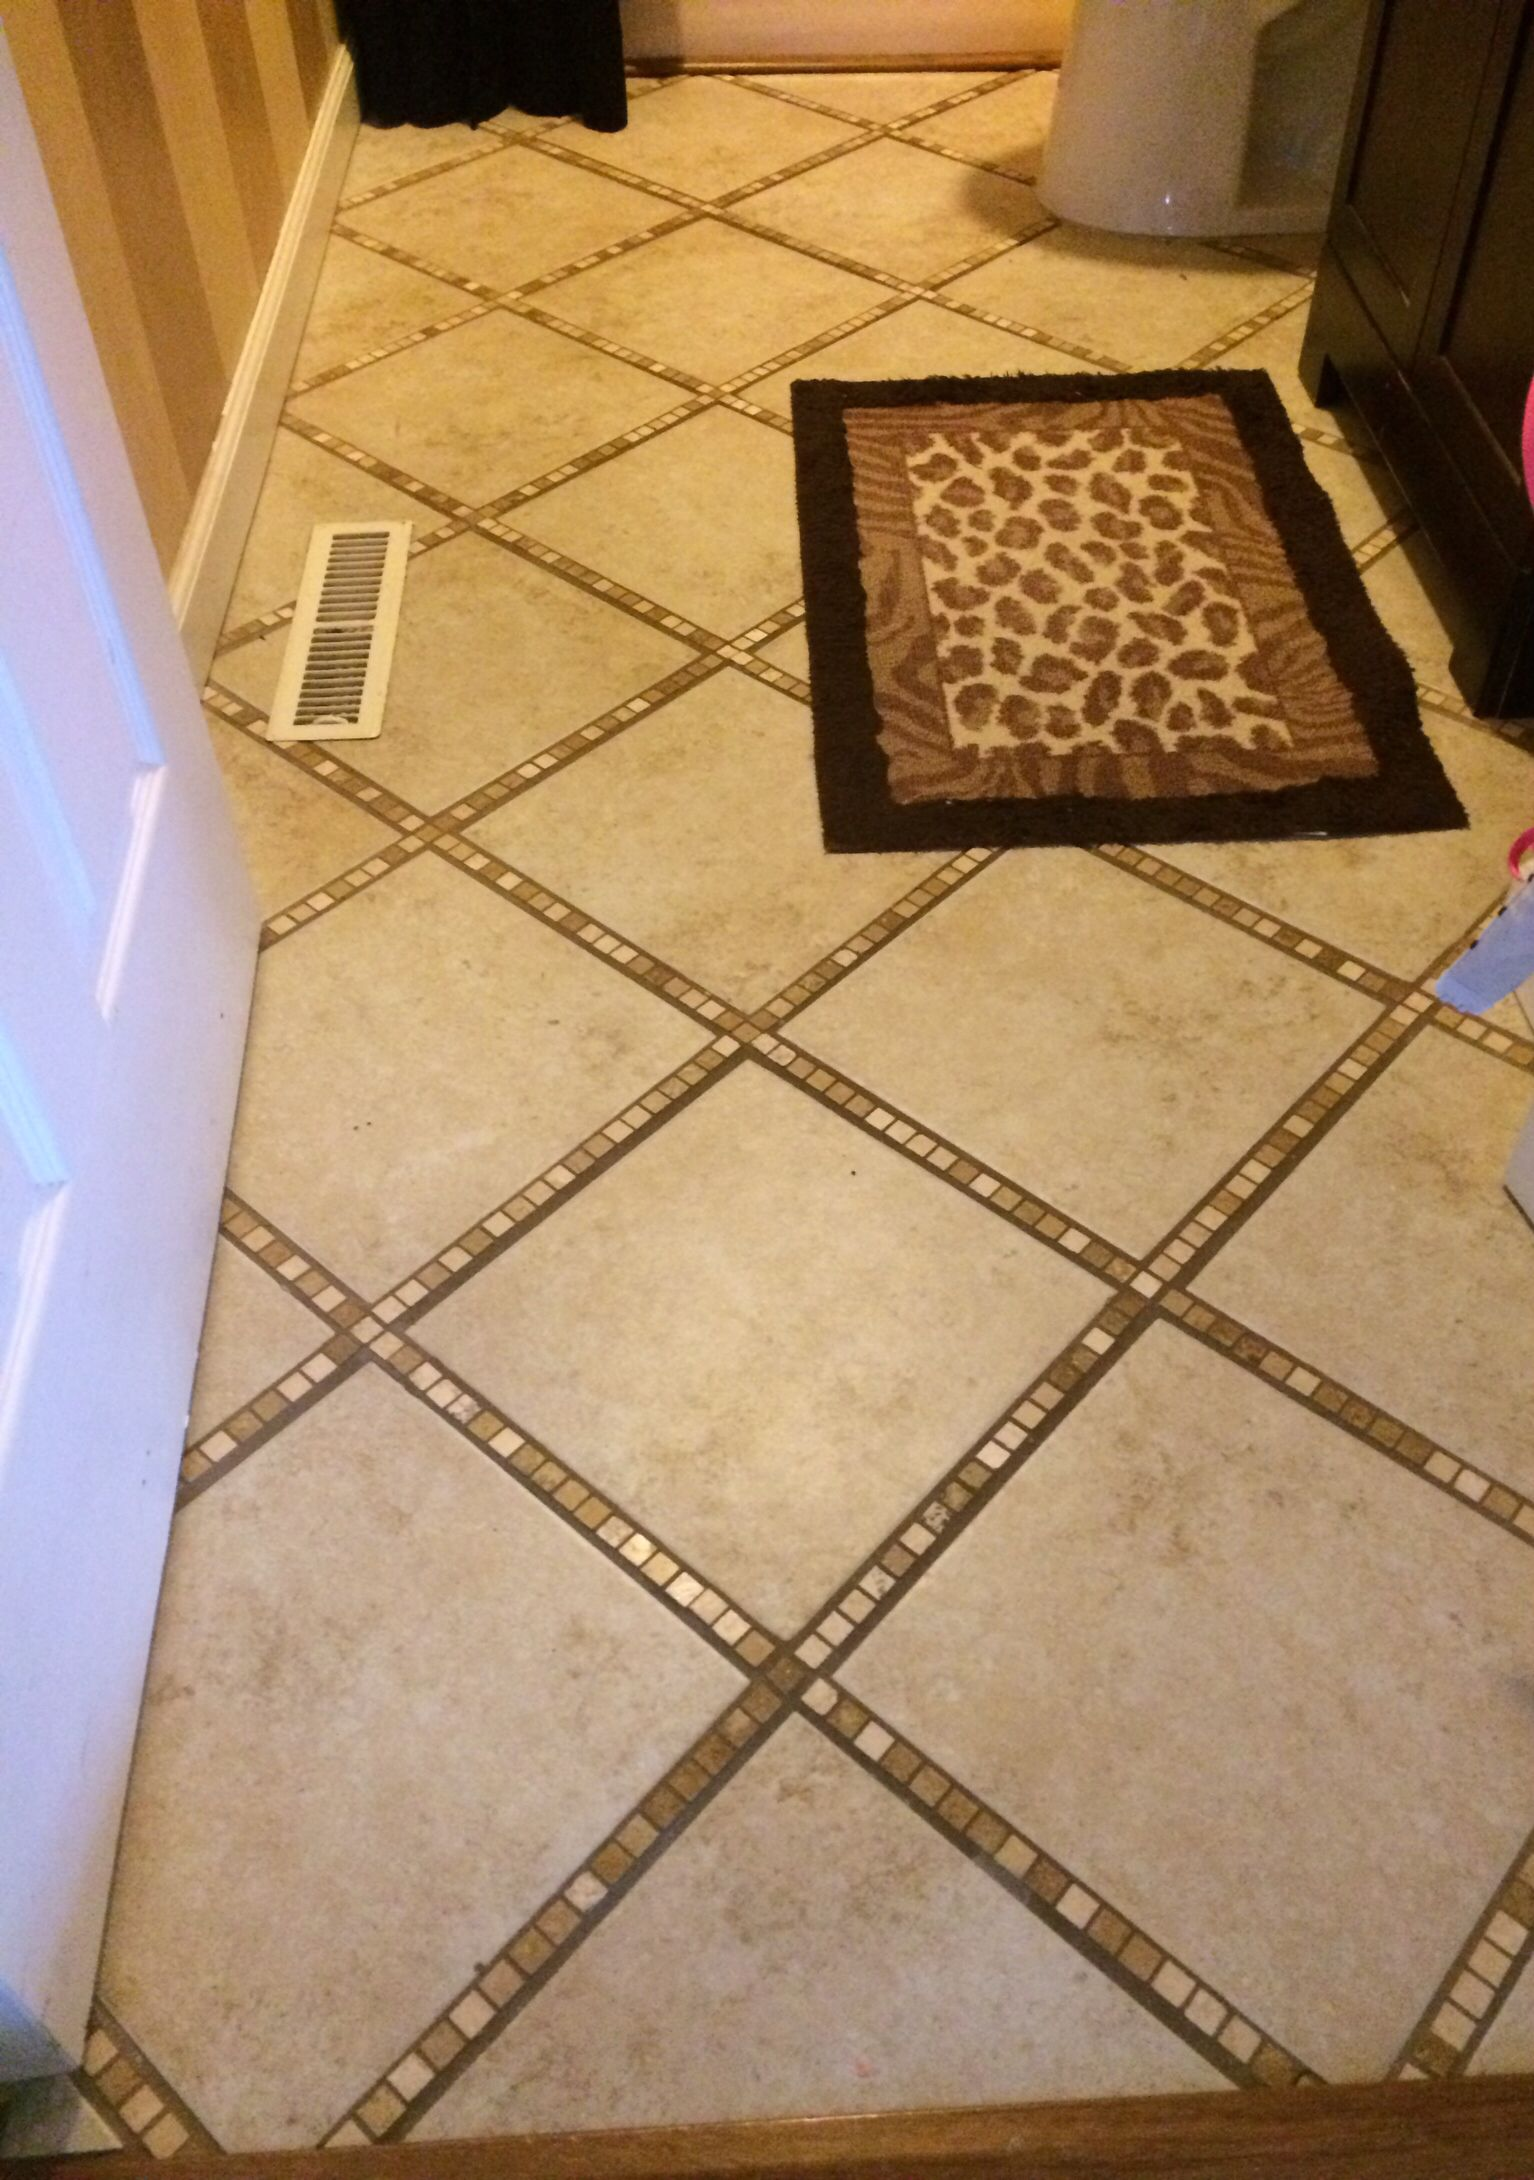 I tiled my bathroom floor in a diagonal pattern using tiny mosaic i tiled my bathroom floor in a diagonal pattern using tiny mosaic square travertine tiles in dailygadgetfo Images